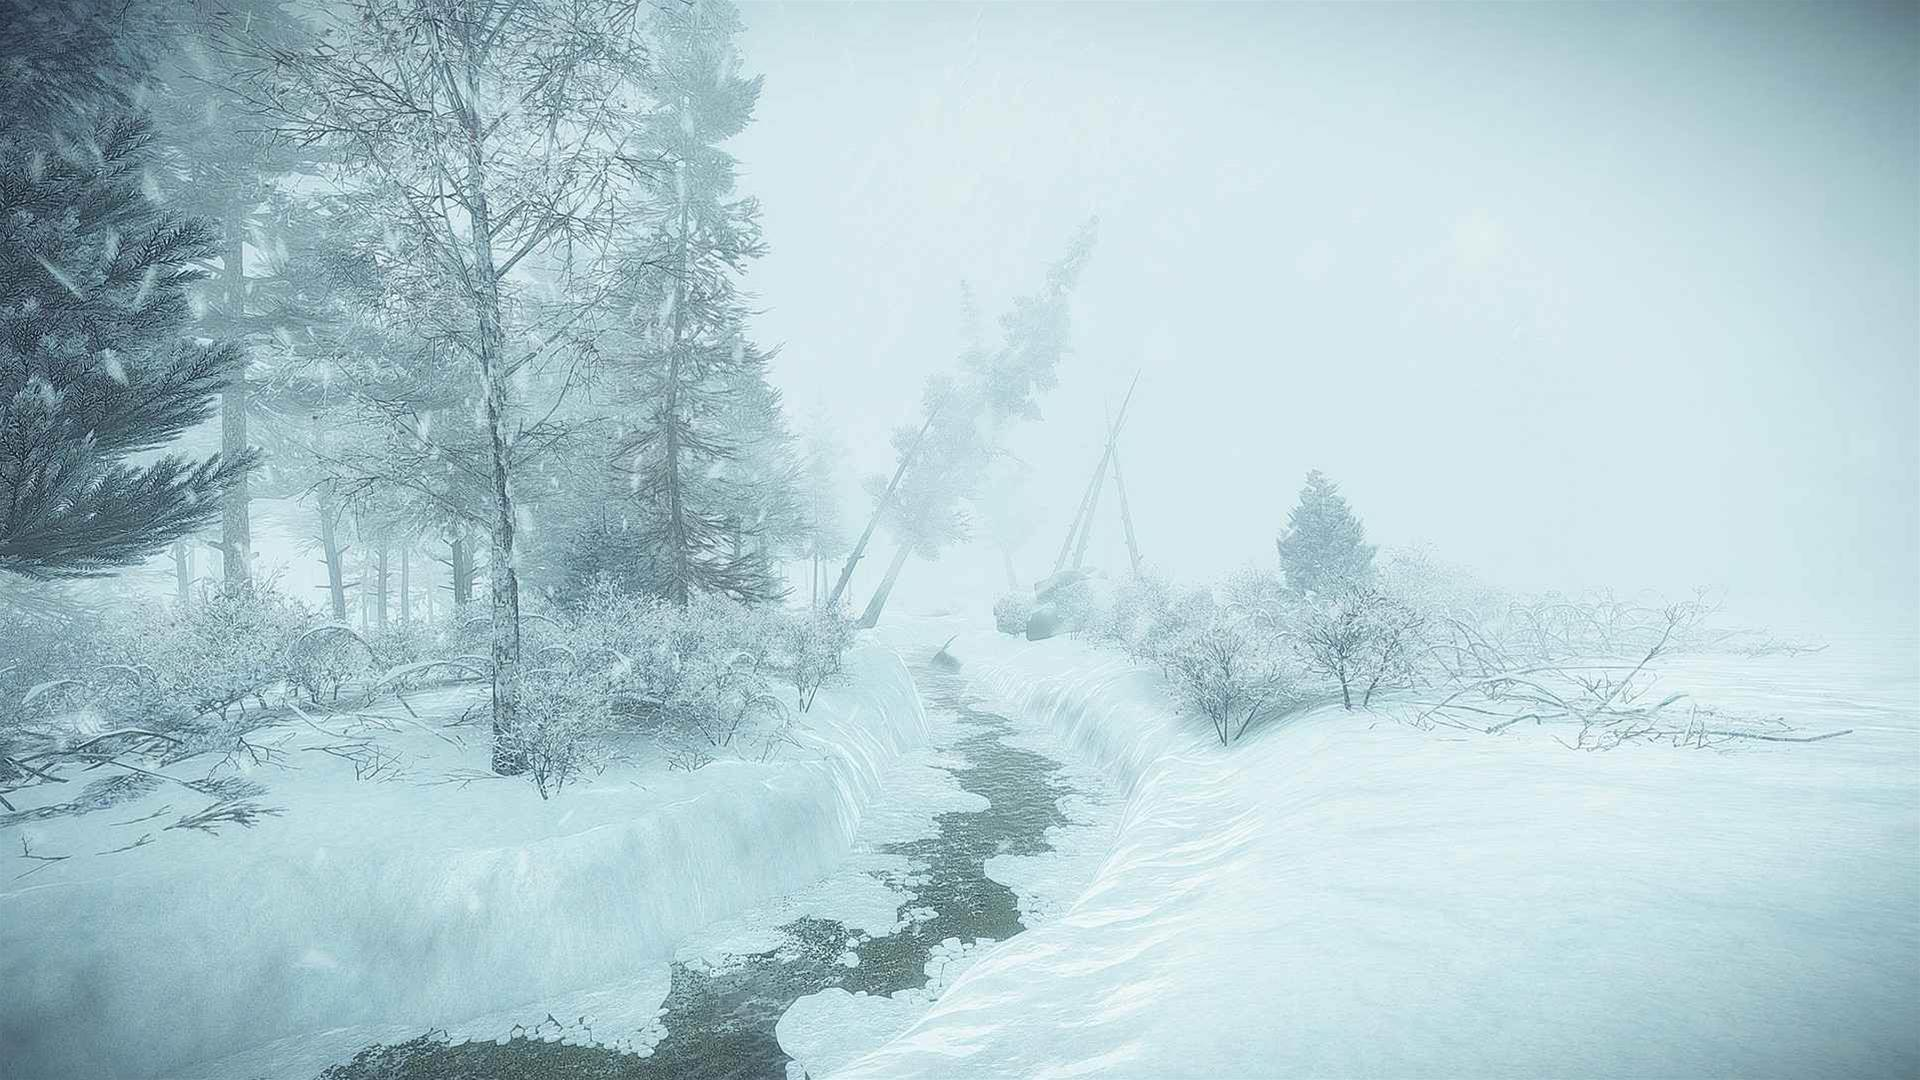 Icy screenshots for indie survival-mystery game Kona